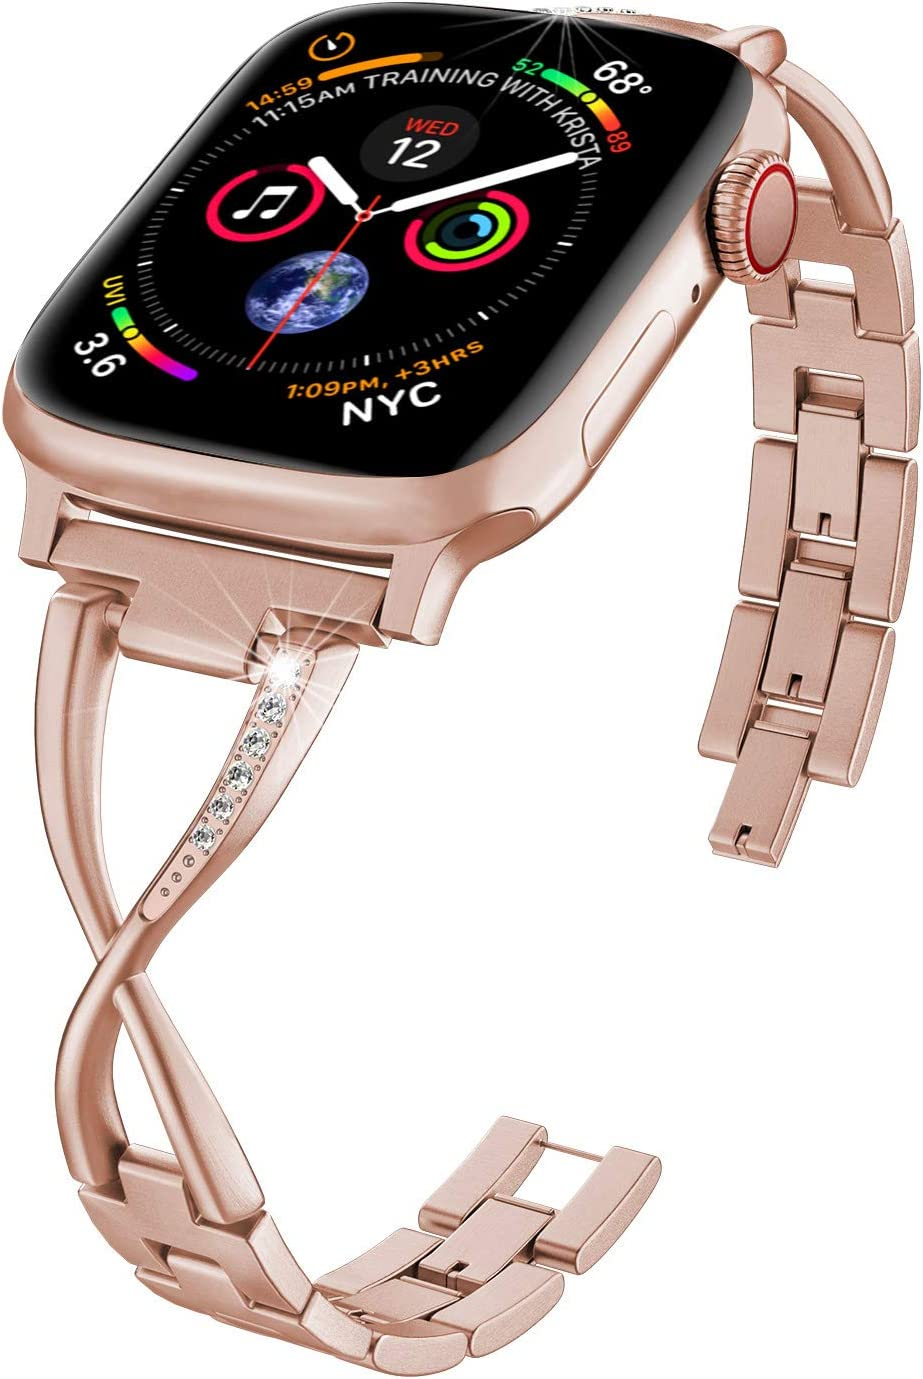 ImmSss Bling Metal Band Compatible for Apple Watch Band Series 6 SE 5 4 40mm 44mm/ iWatch Series 3 2 1 38mm 42mm, Wristband Strap Cuff Bangle Bracelet